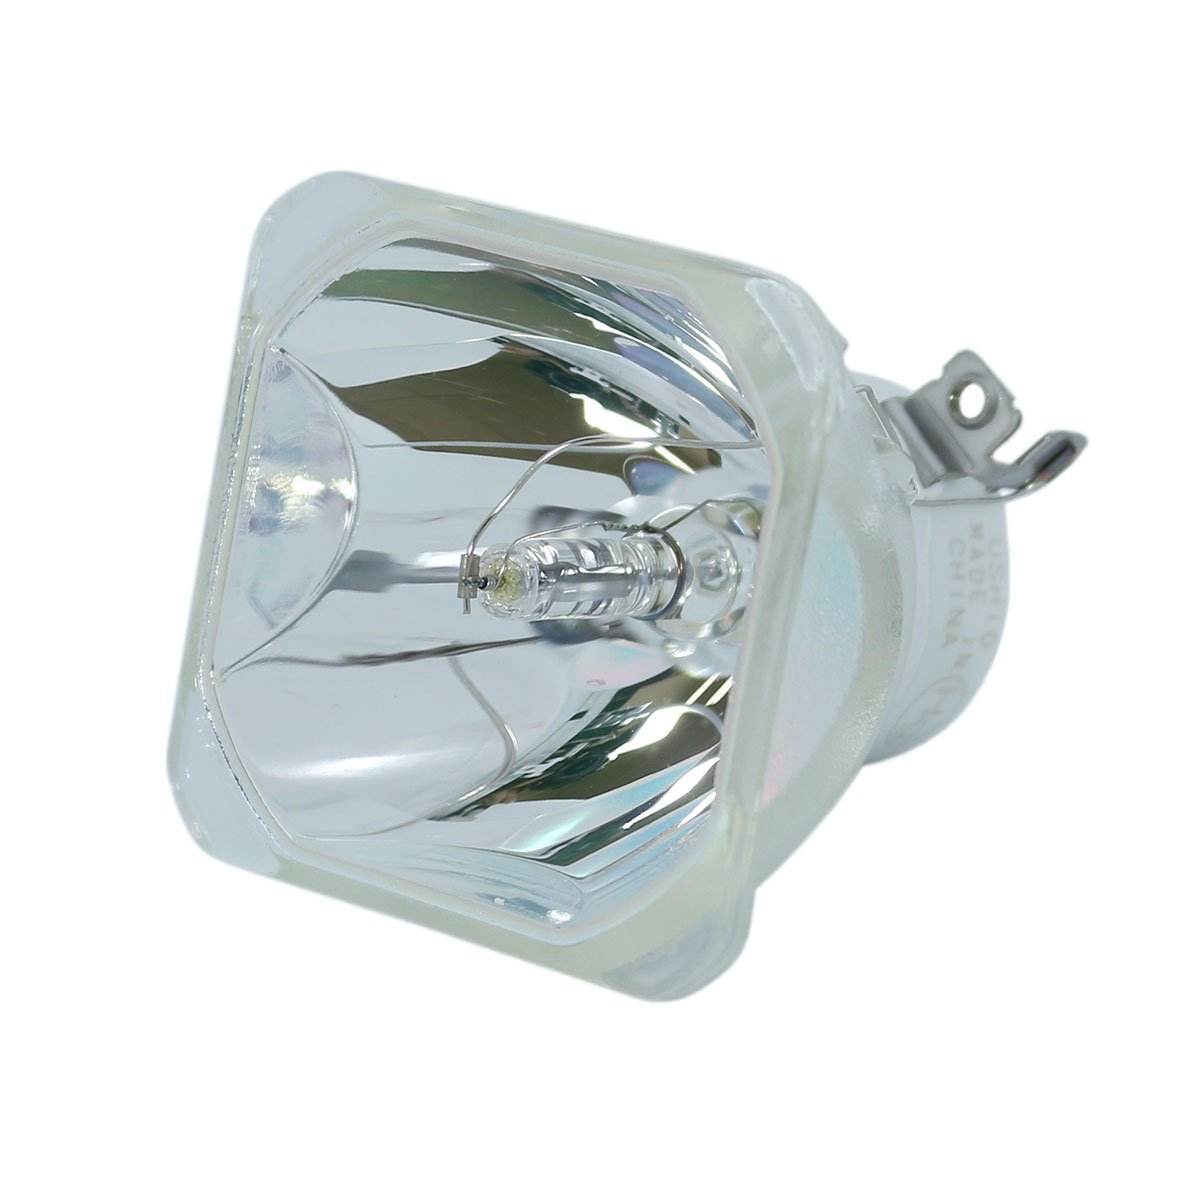 SpArc OEM交換用ランプ 囲い/電球付き Ushio NSHA230YT用 Platinum (Brighter/Durable) Platinum (Brighter/Durable) Lamp Only B07MFH1T98